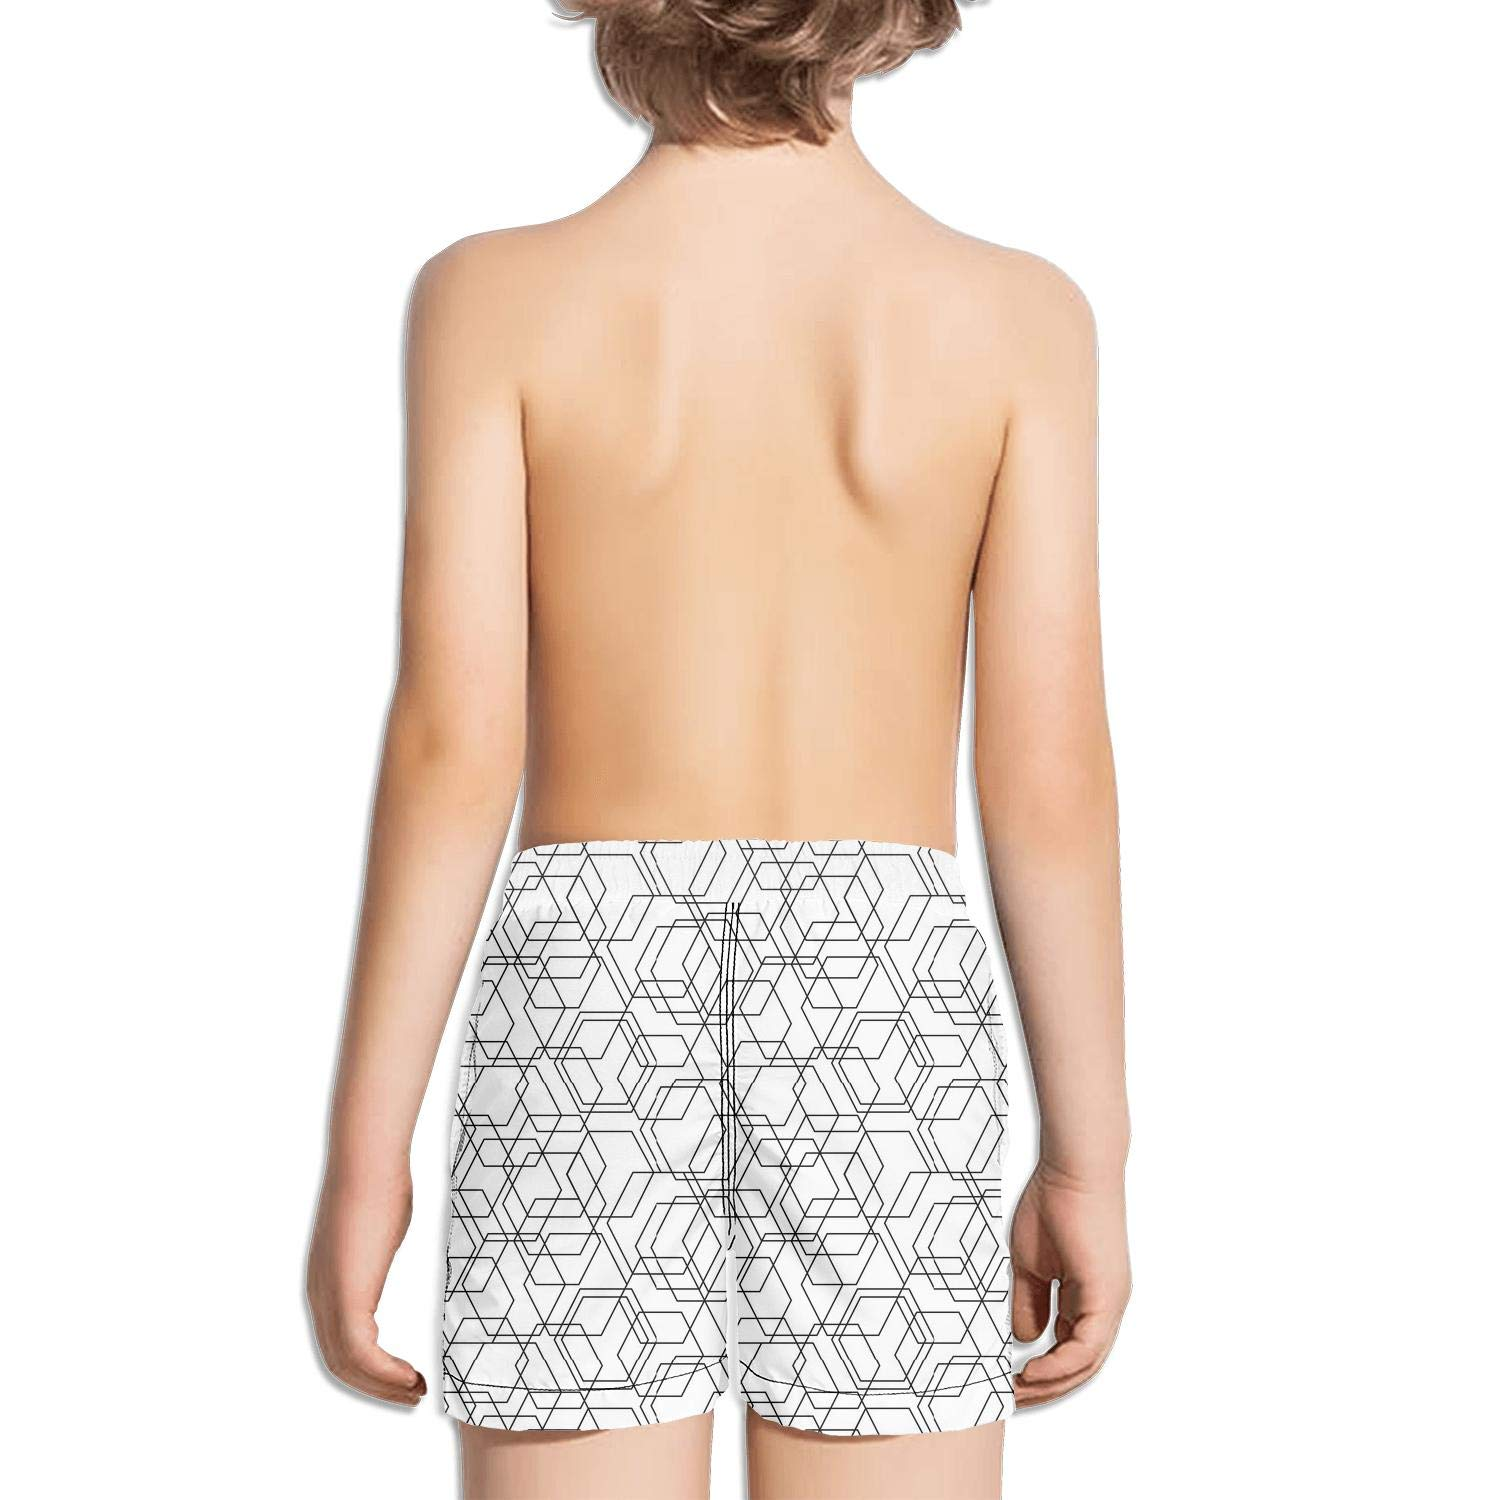 Geometric Abstract Stripe White and Black Fashion Swim Trunks BingGuiC Boys Quick Dry Shorts